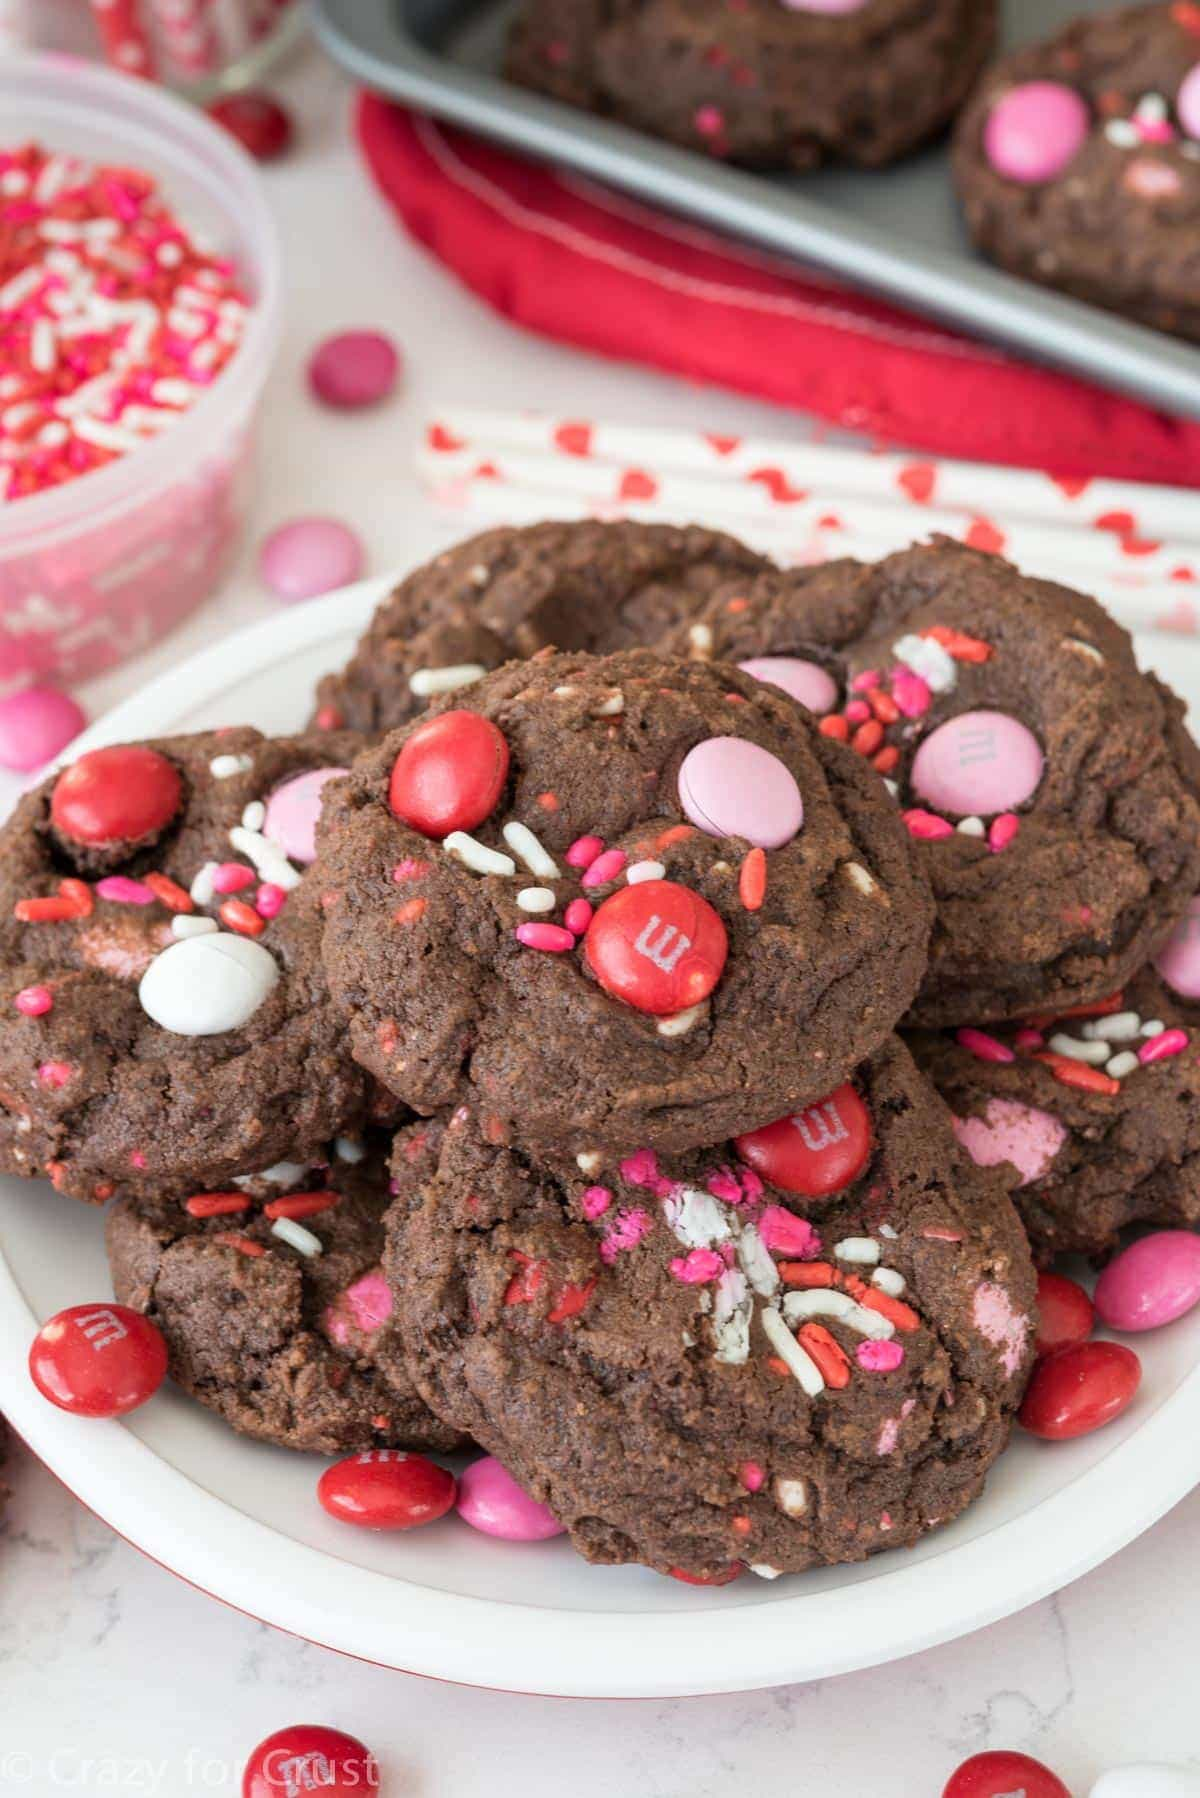 Very Valentine Pudding Cookies This Easy Chocolate Cookie Recipe Full Of Chocolate Pudding For A